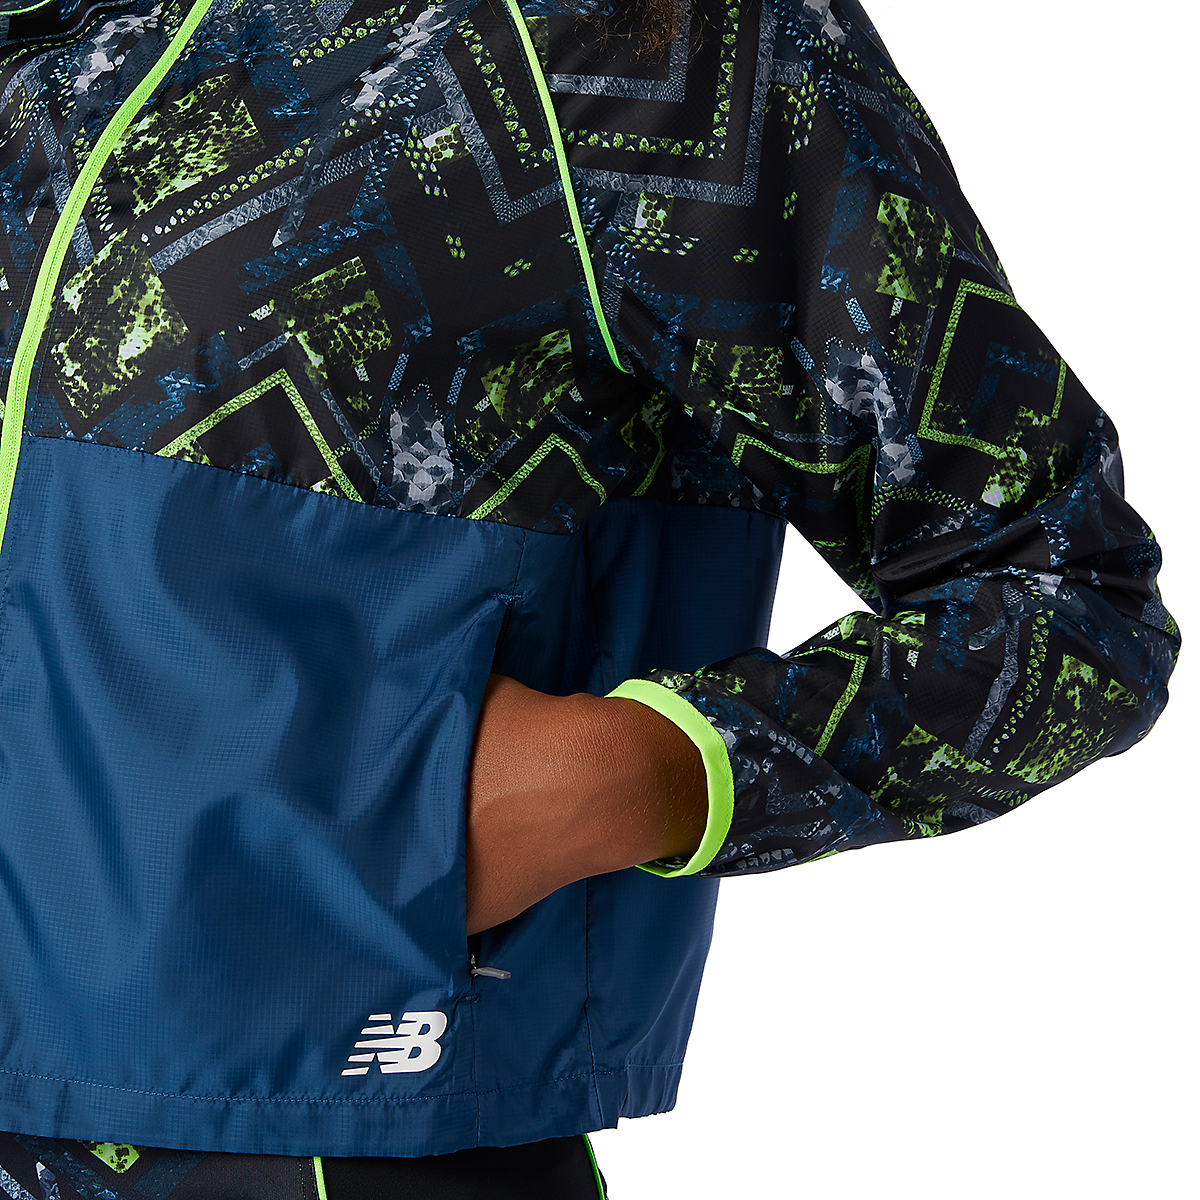 Women's New Balance Printed Fast Flight Jacket - Color: Print - Size: XS, Print, large, image 4